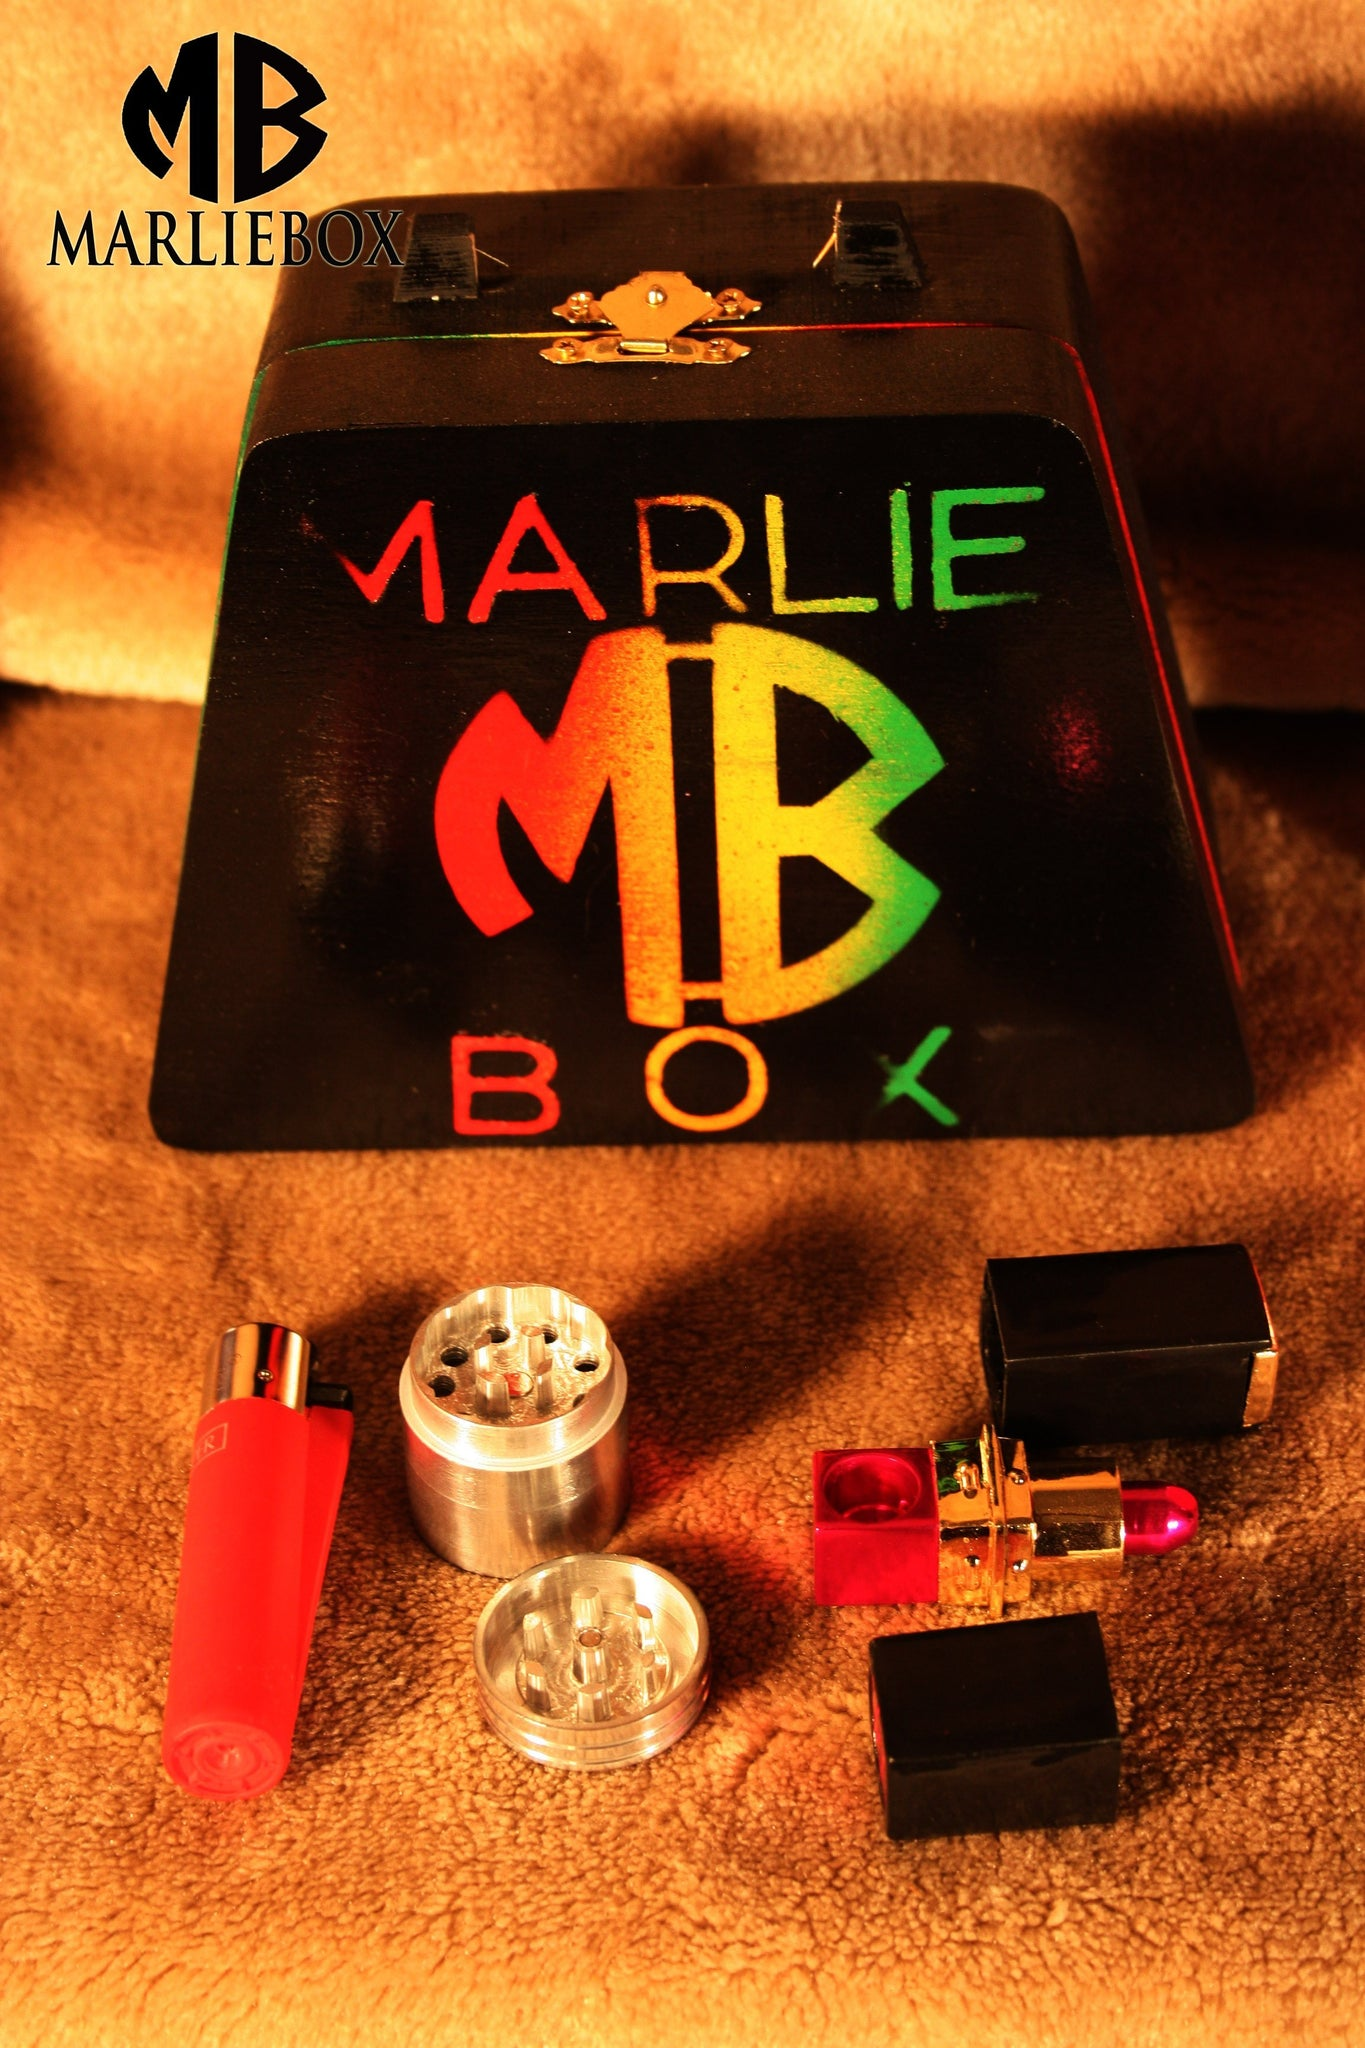 MARLIEBOX UPSCALE HERBAL ACCESSORY KITS 1F MB ELEV8 STYLE PURSE